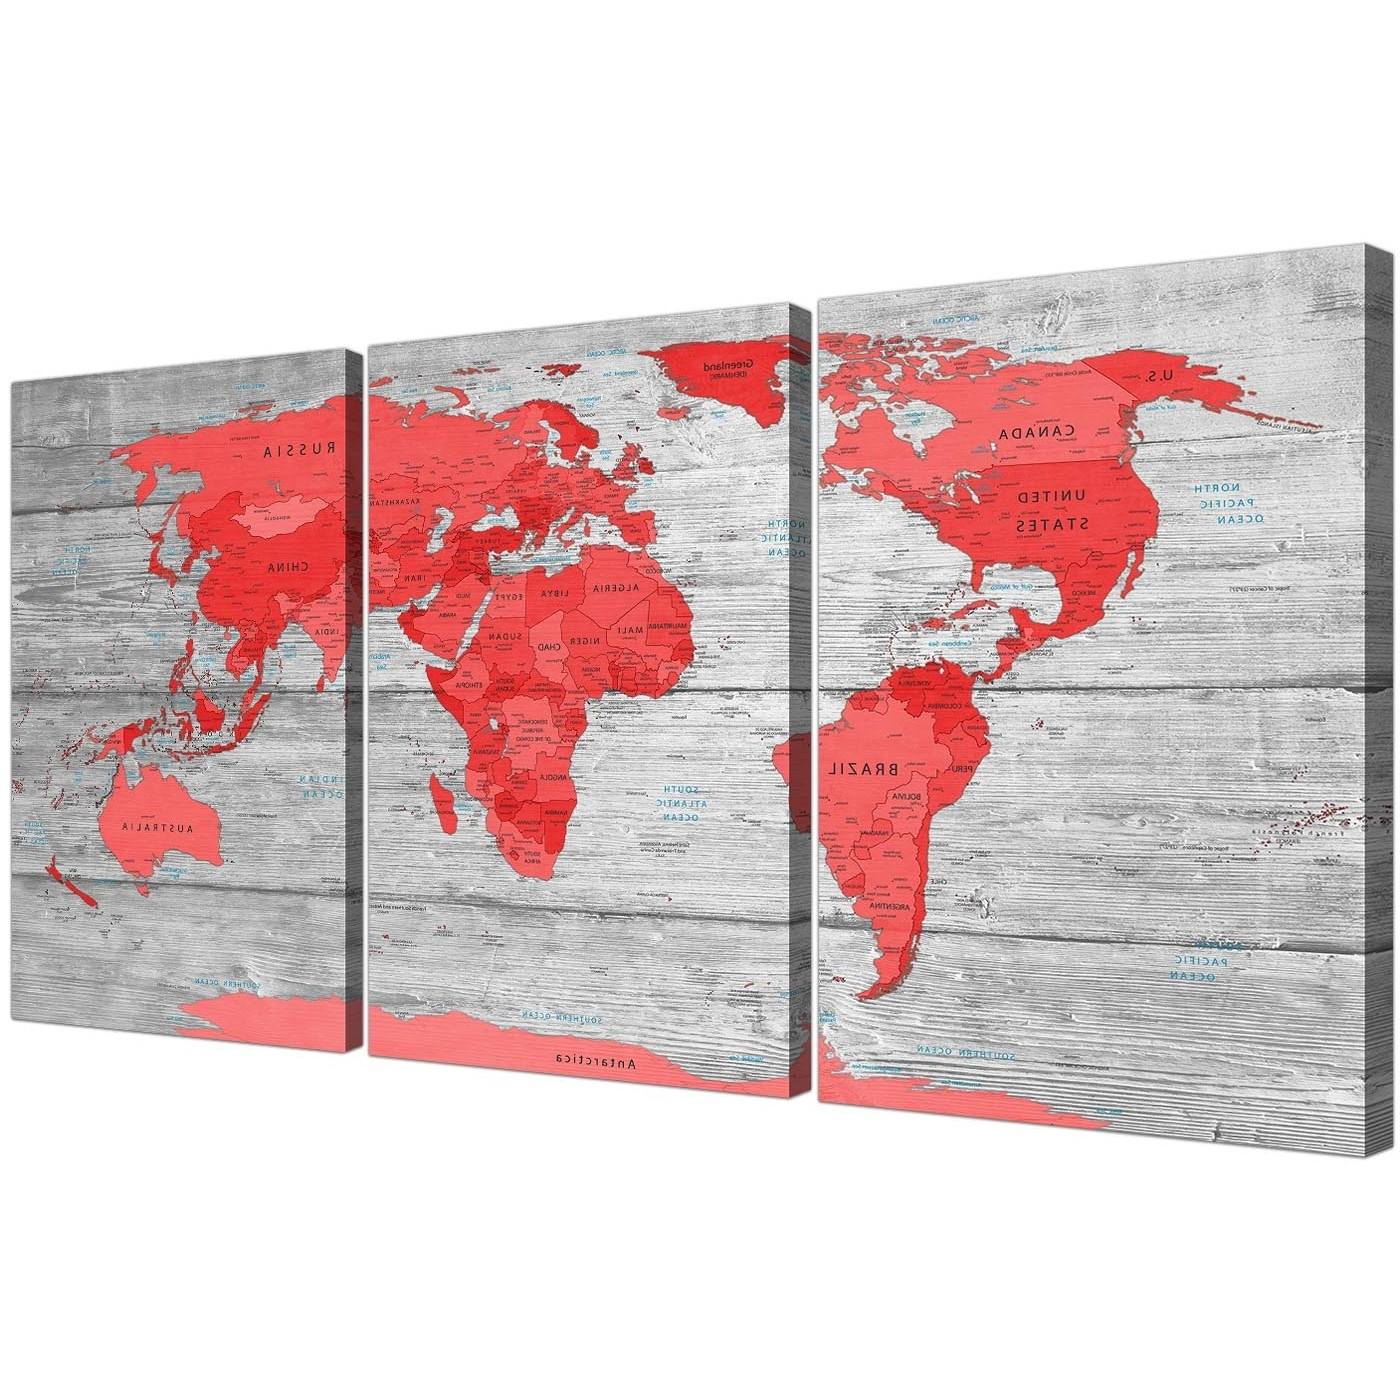 Large Red Grey Map Of The World Atlas Canvas Wall Art Print Split Throughout Most Popular Atlas Wall Art (View 5 of 15)